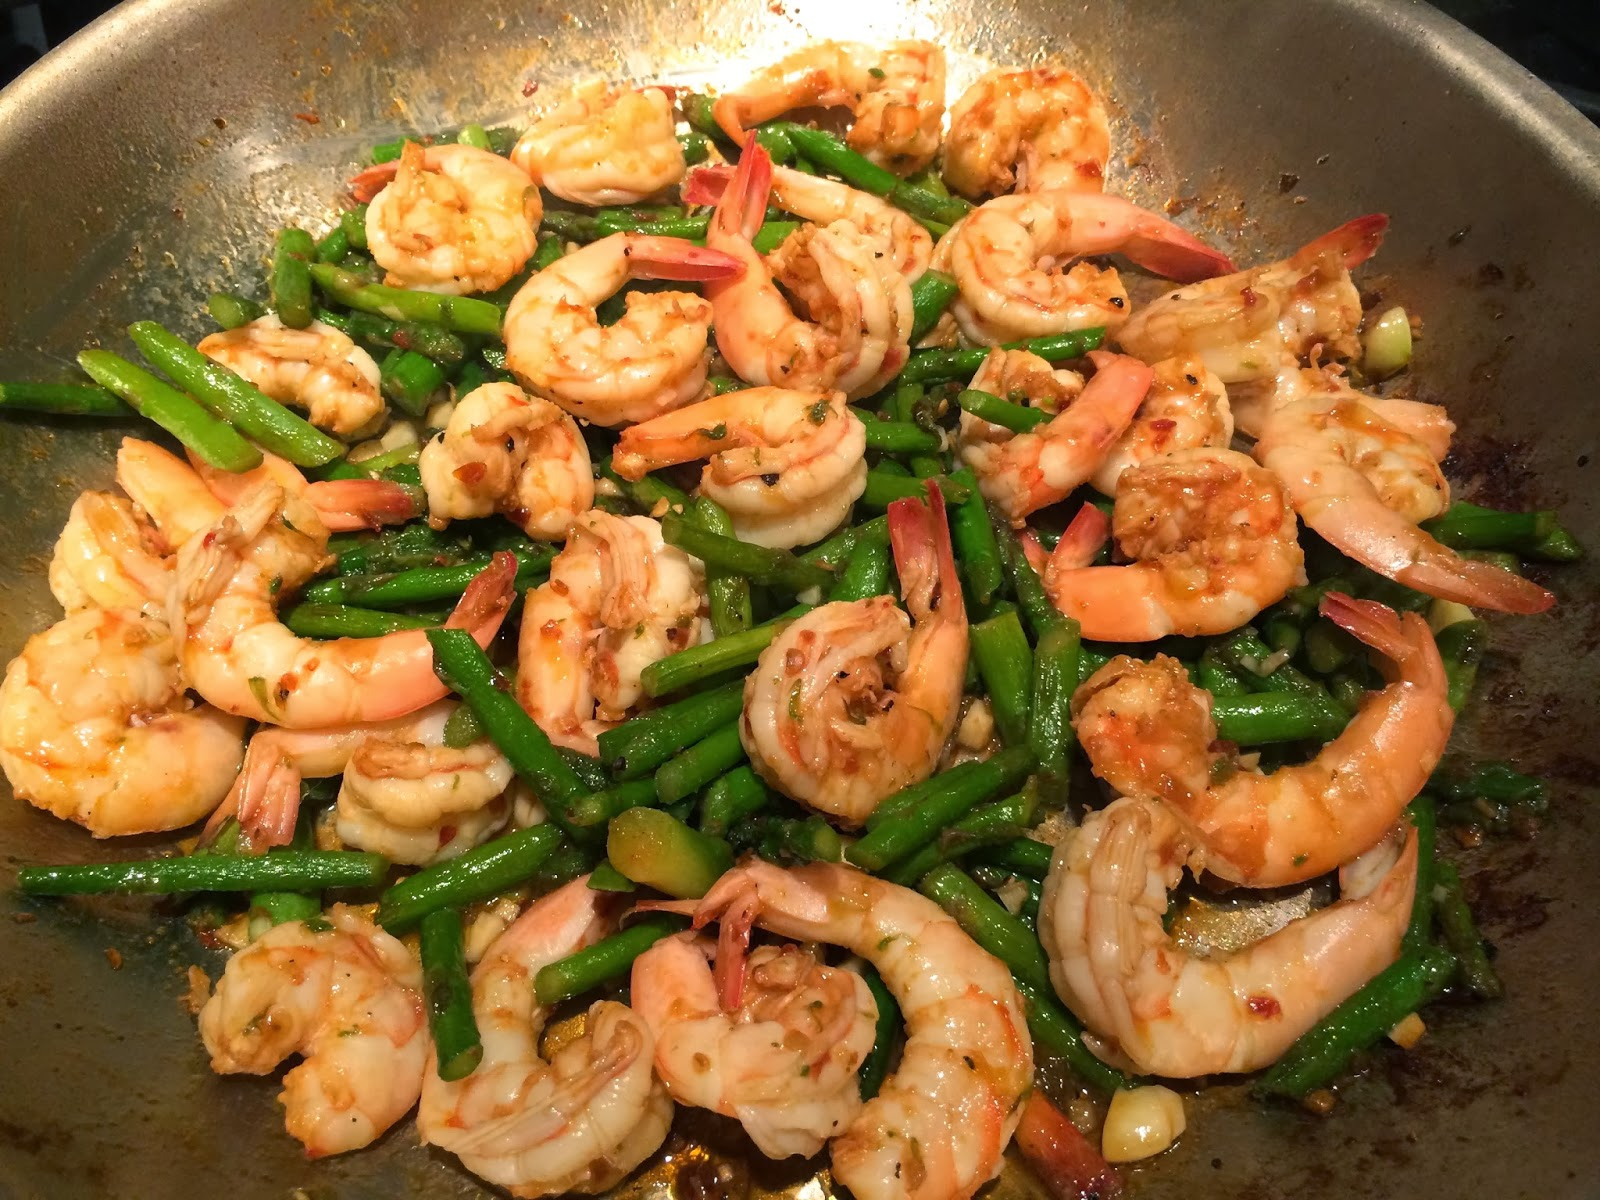 ... is opaque (pink). Mix the sauce well with the shrimp and asparagus